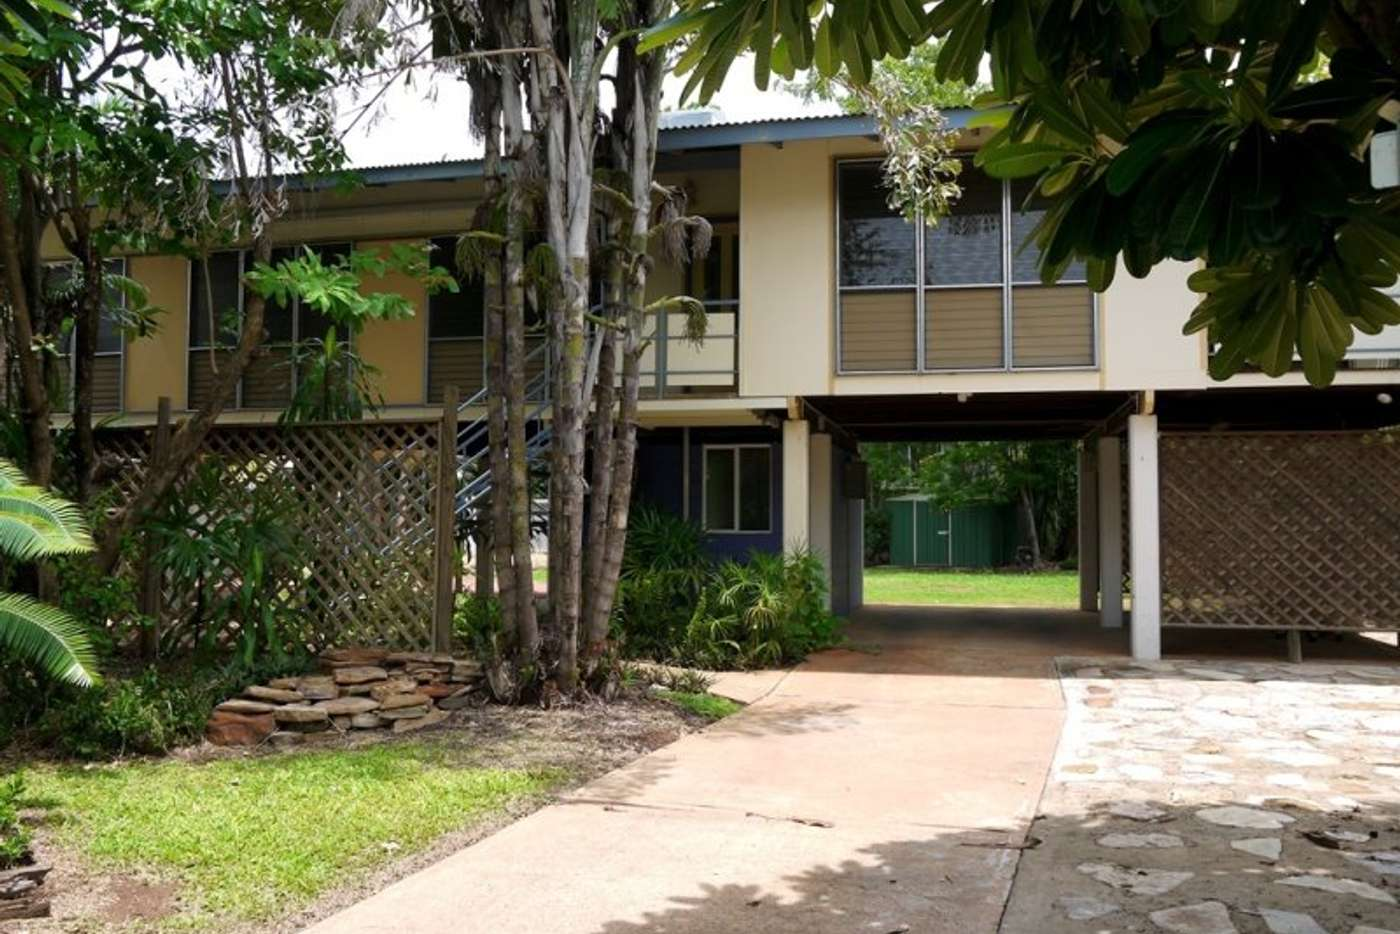 Main view of Homely house listing, 15 Rundle Street, Katherine NT 850